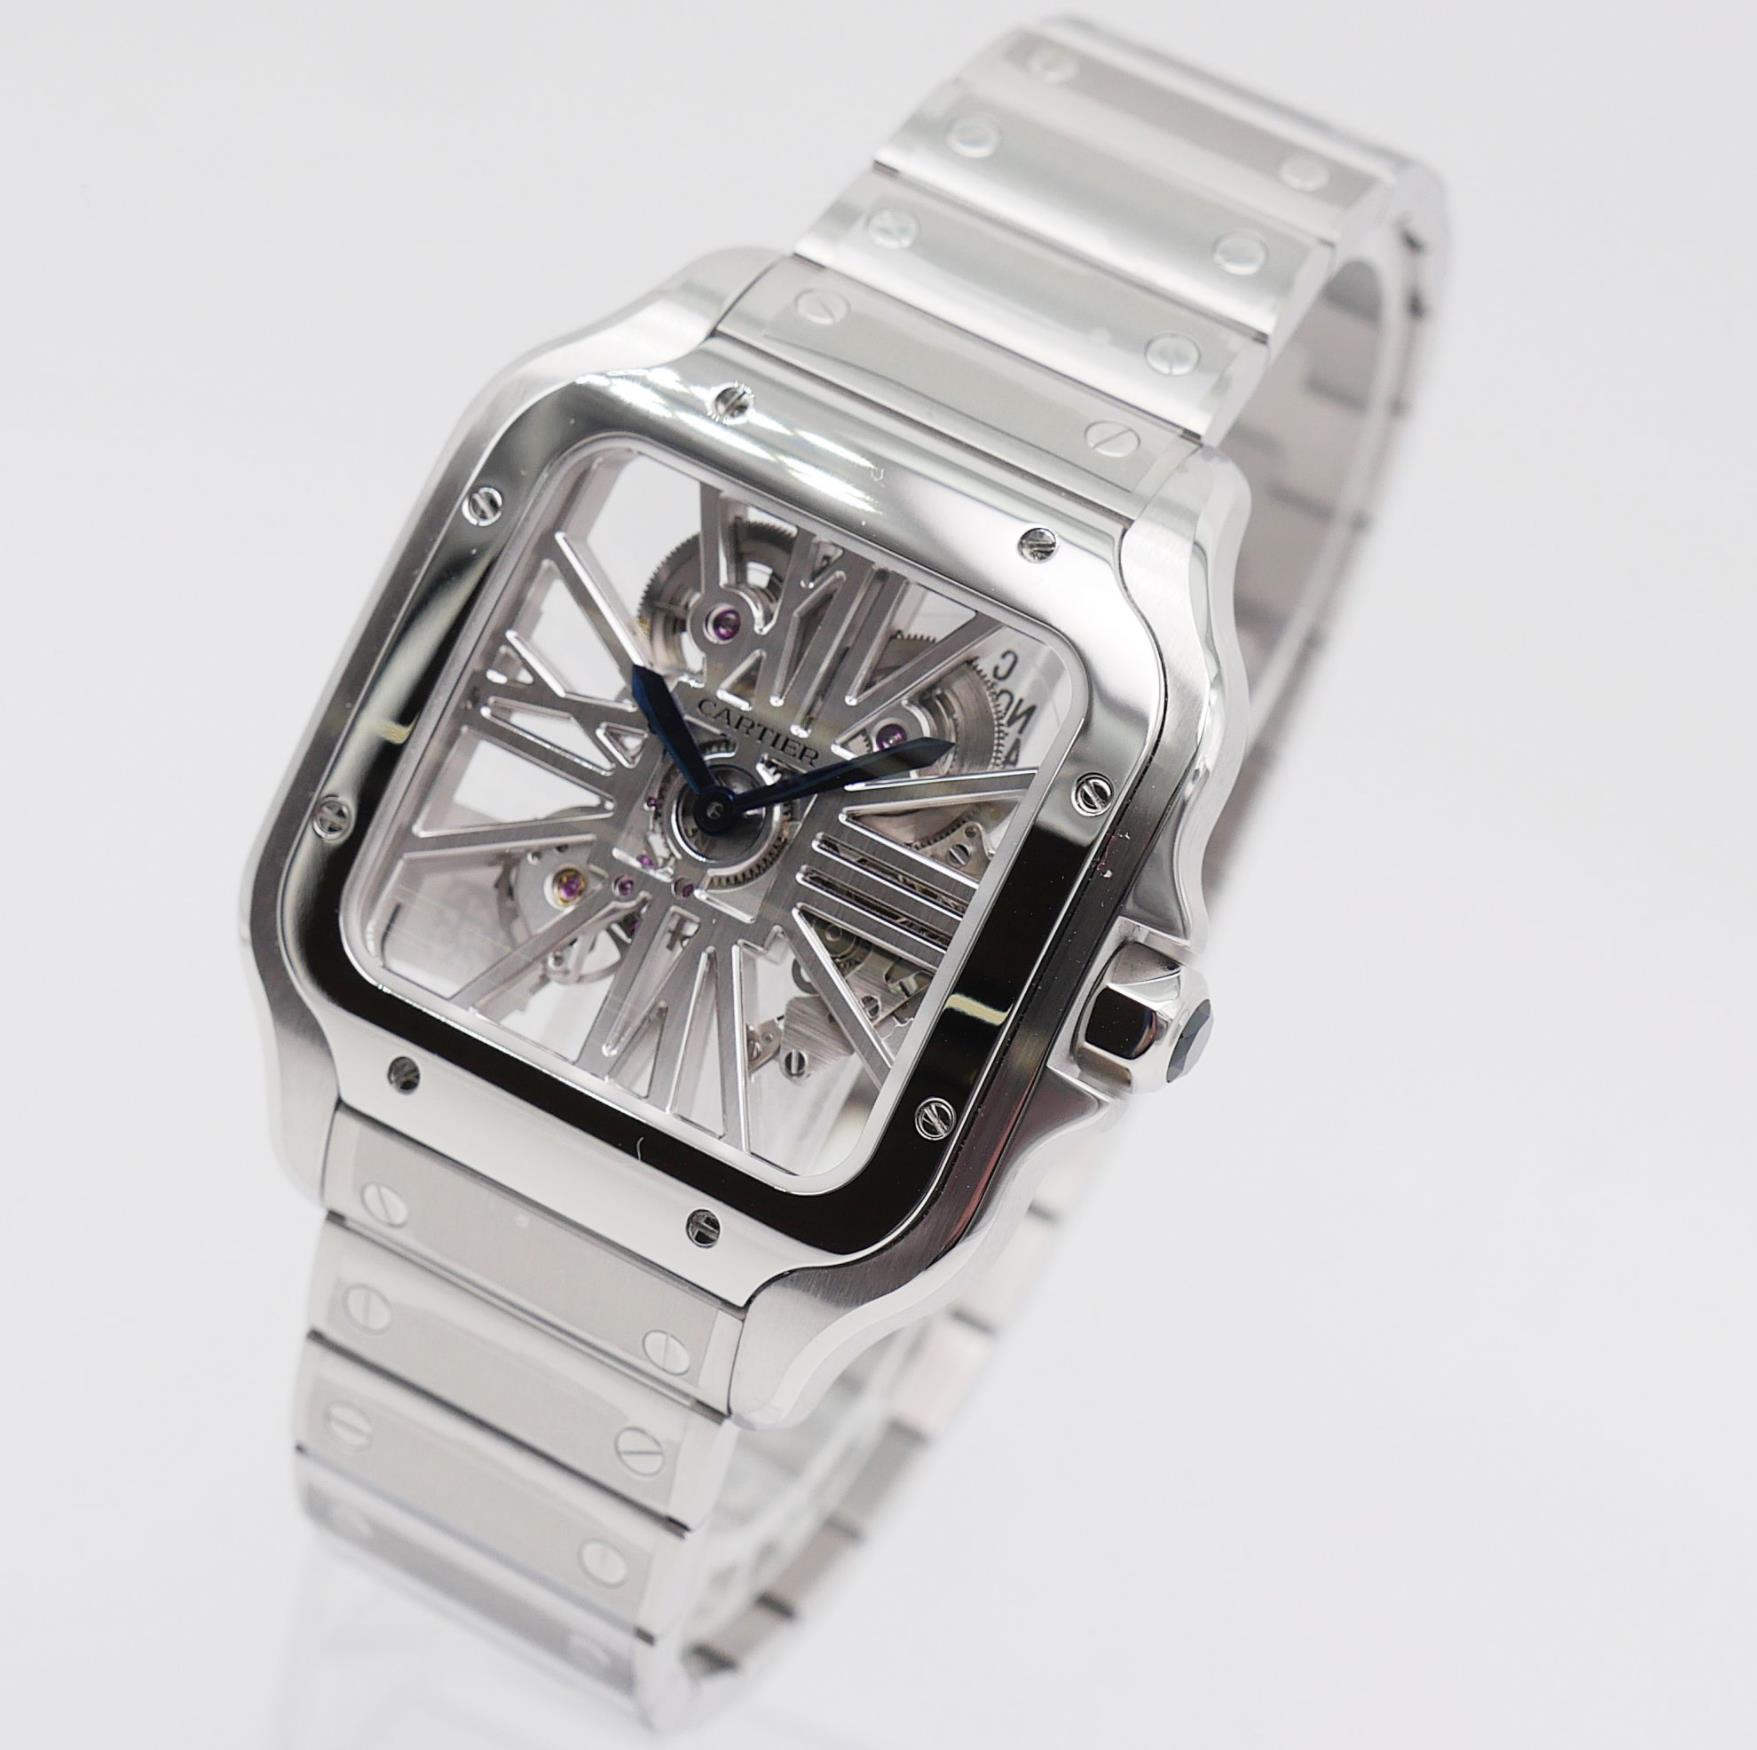 The stainless steel fake watch can guarantee water resistance to 100 meters.